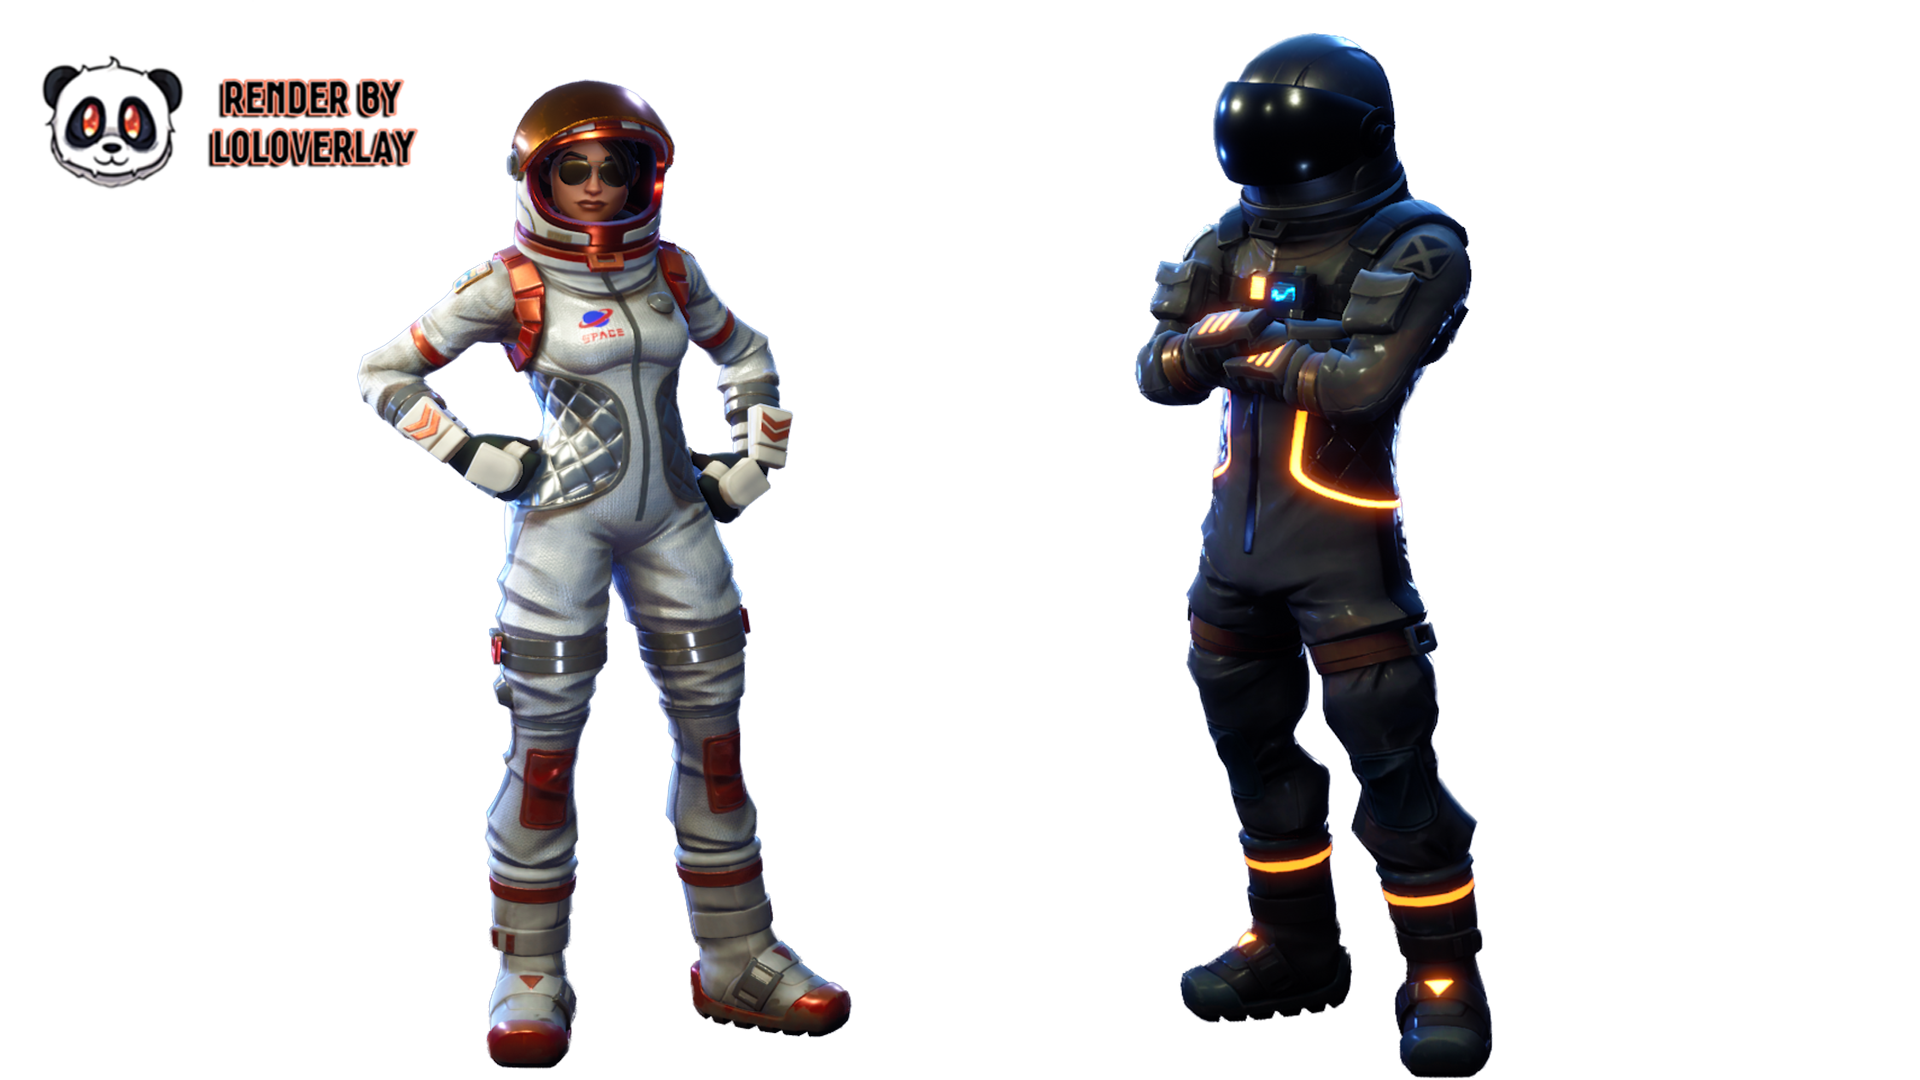 Fortnite characters png. Moonwalker and dark voyager